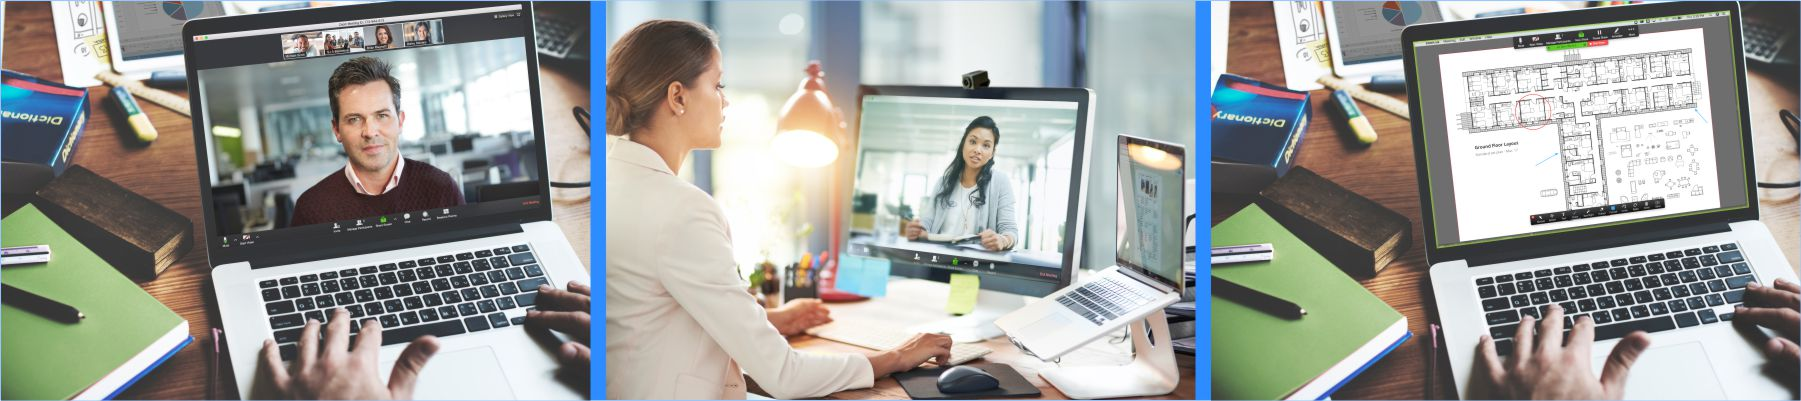 zoom-video-conferencing-meetings-basic-130420